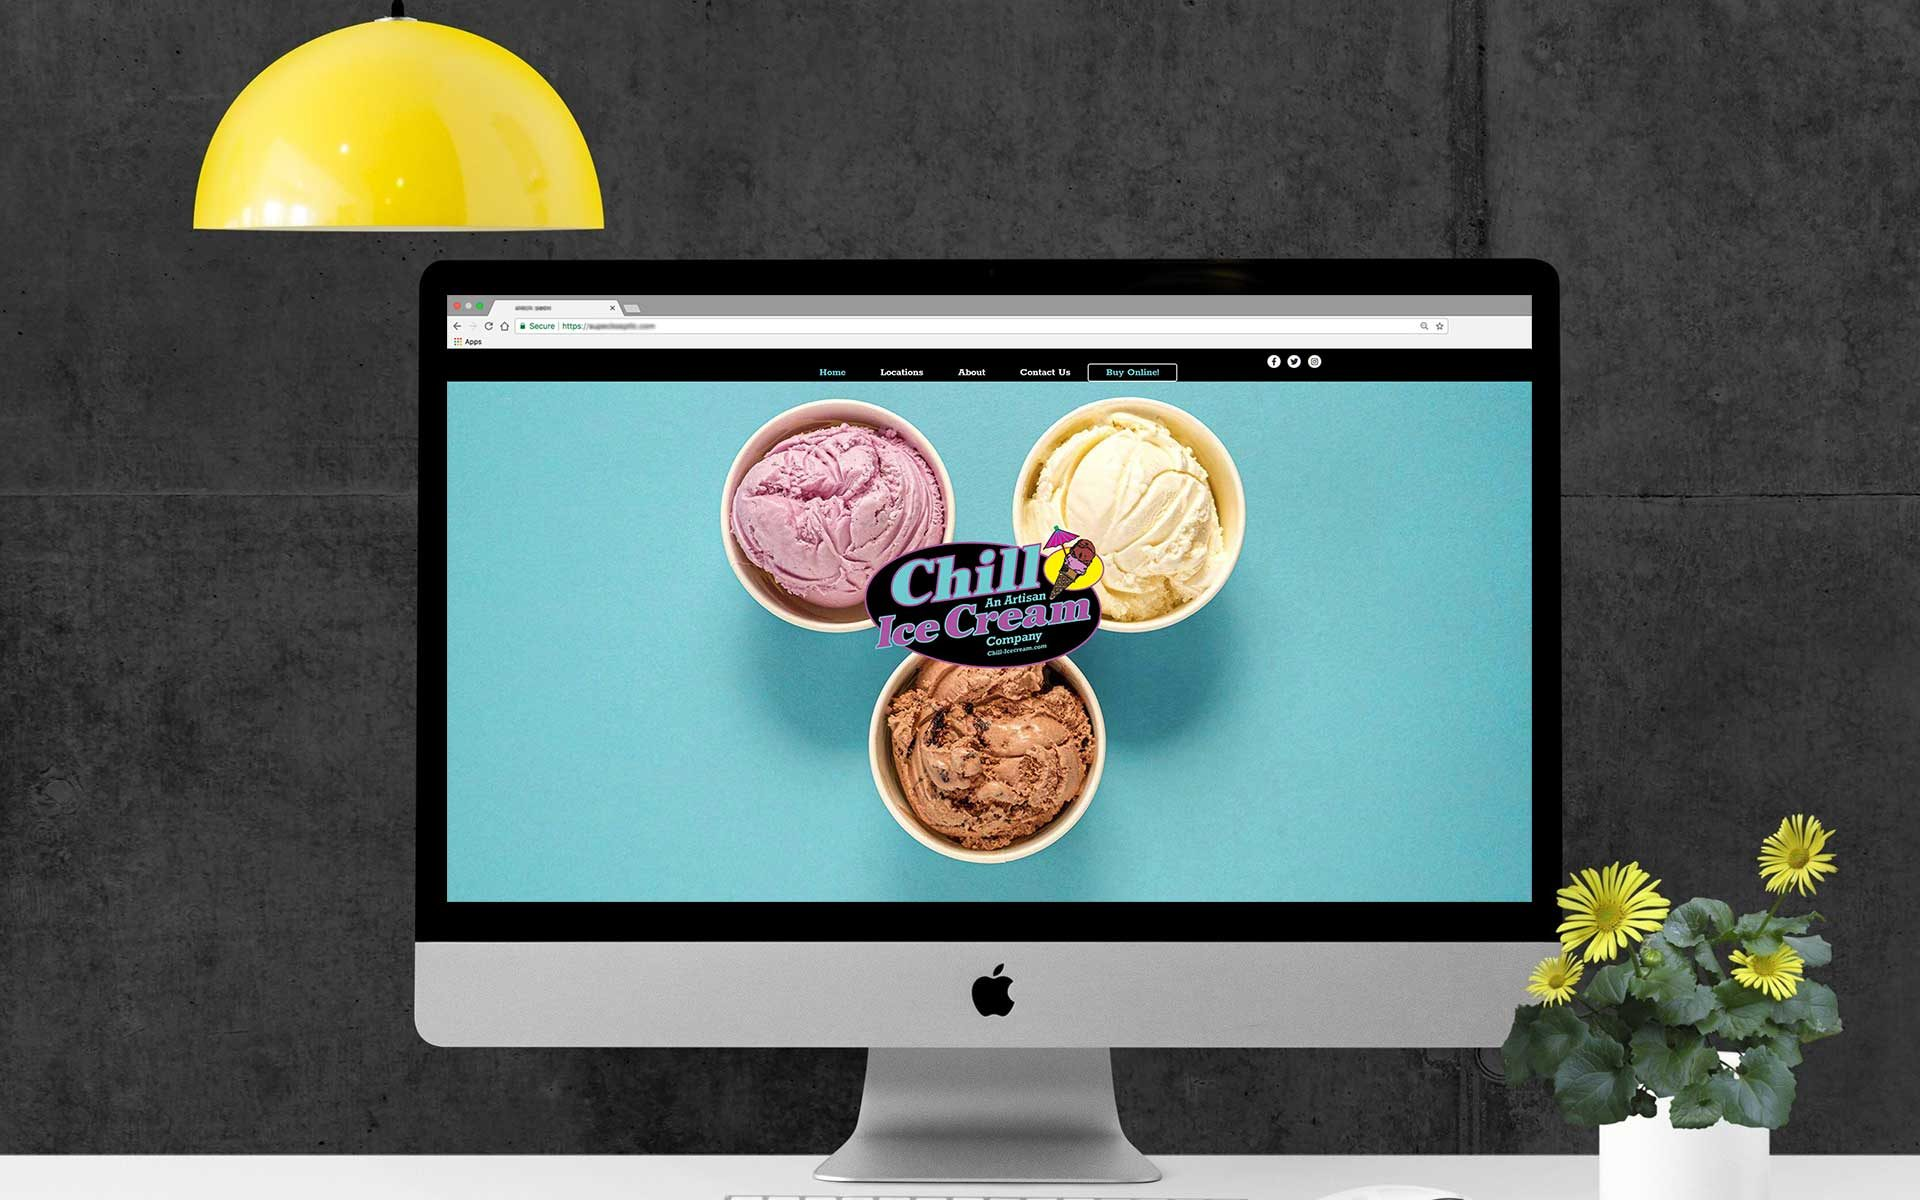 chill-icecream.com website redesign